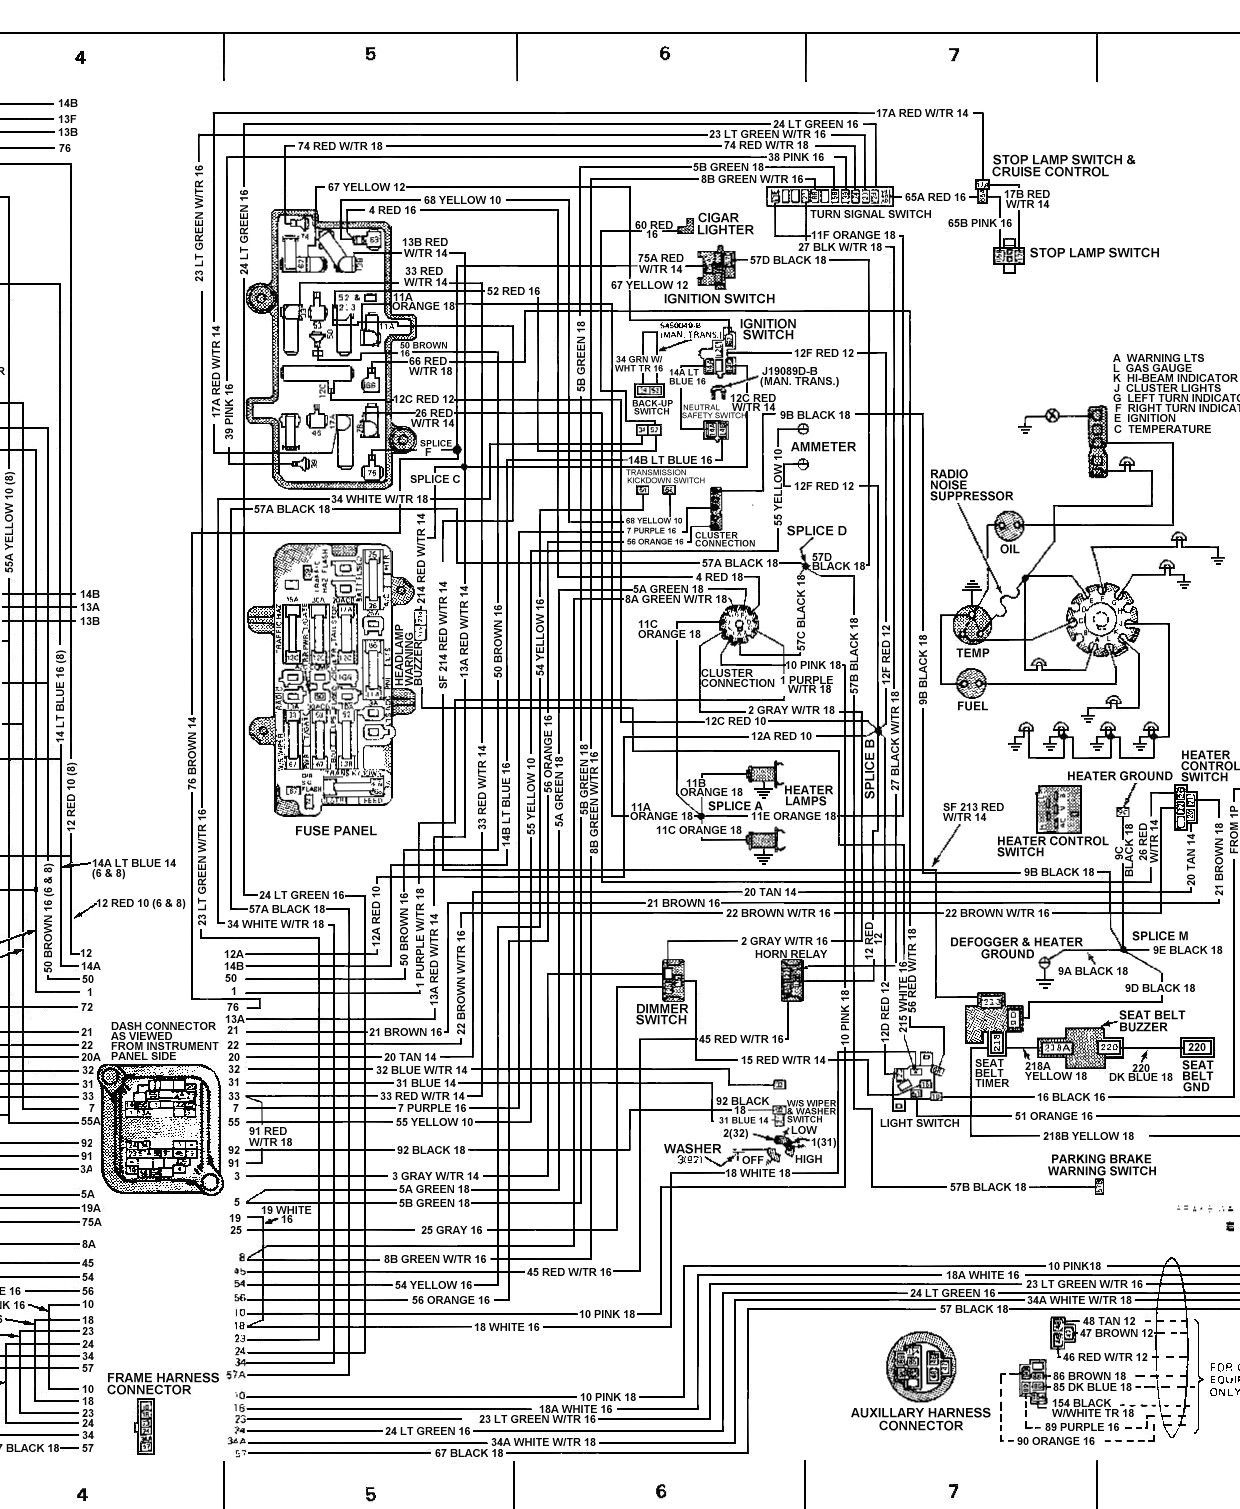 Nissan Frontier Wiring Schematic | Wiring Schematic Diagram on